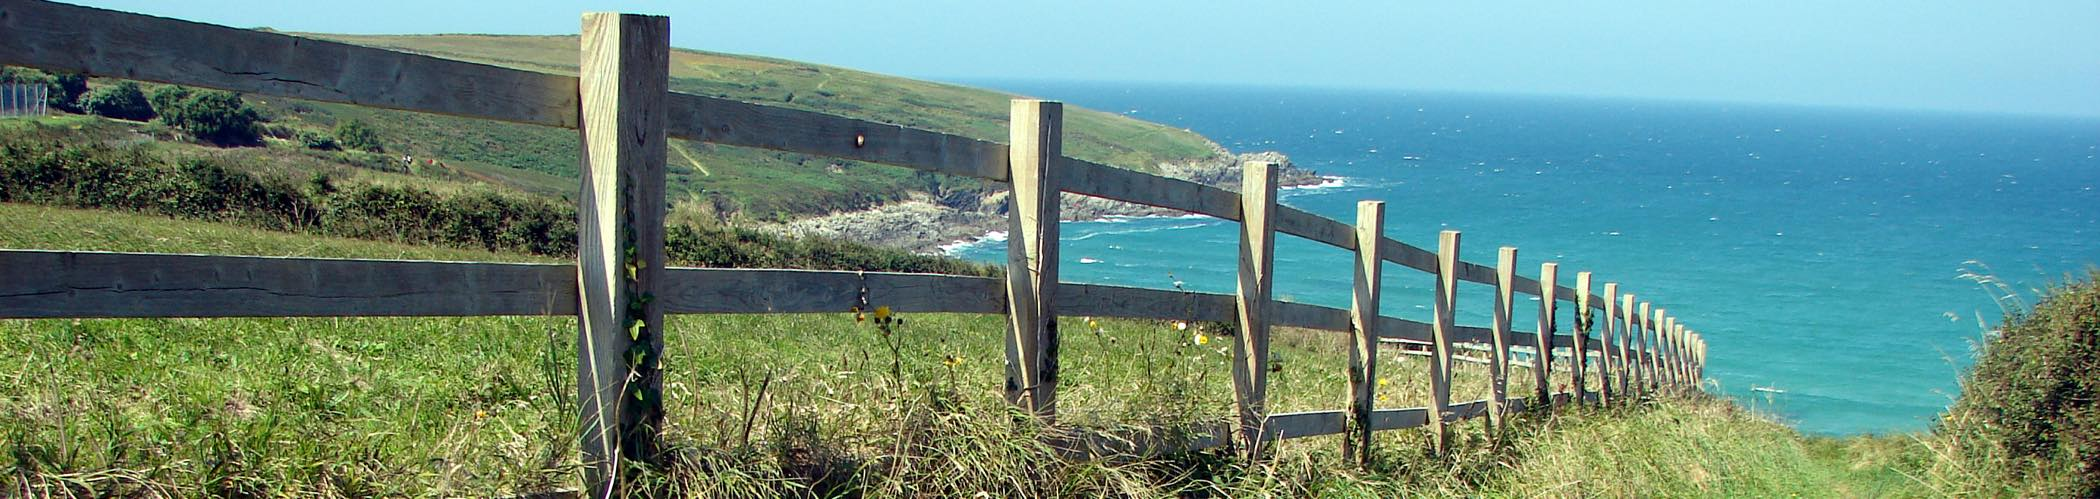 Cornwall romantic holiday cottages and breaks